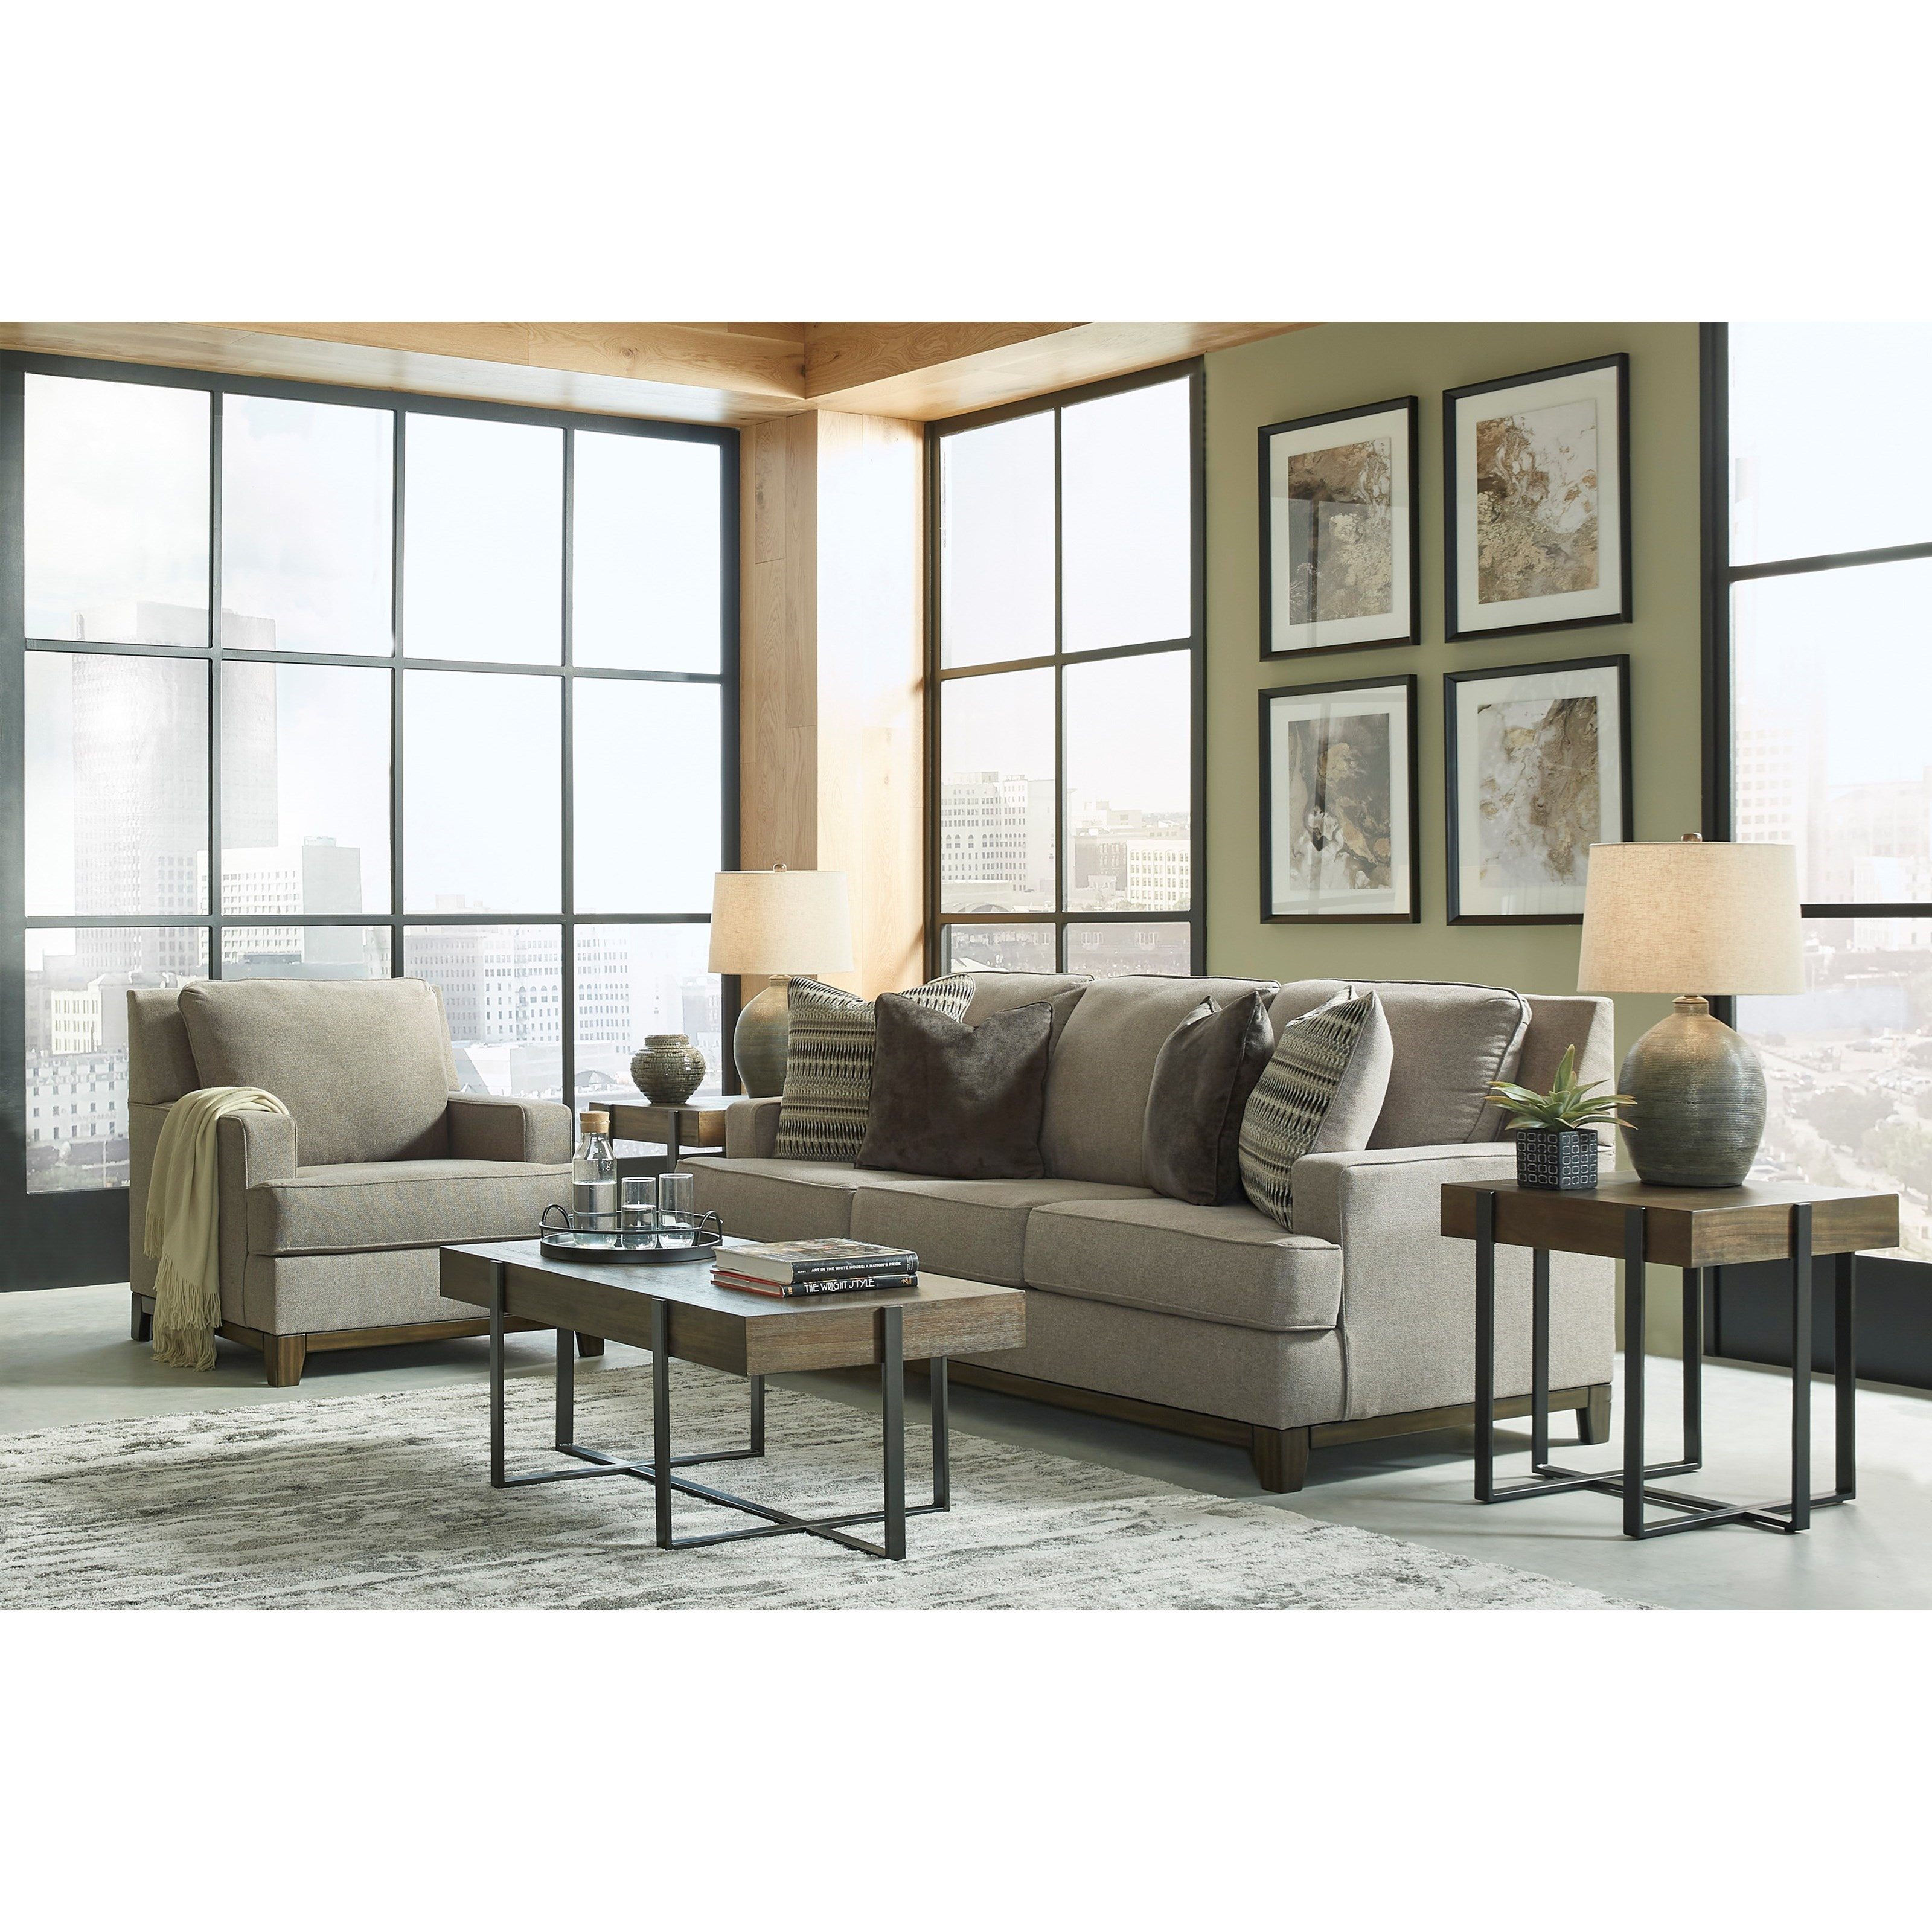 Kaywood Living Room Group by Signature Design by Ashley at Furniture Barn